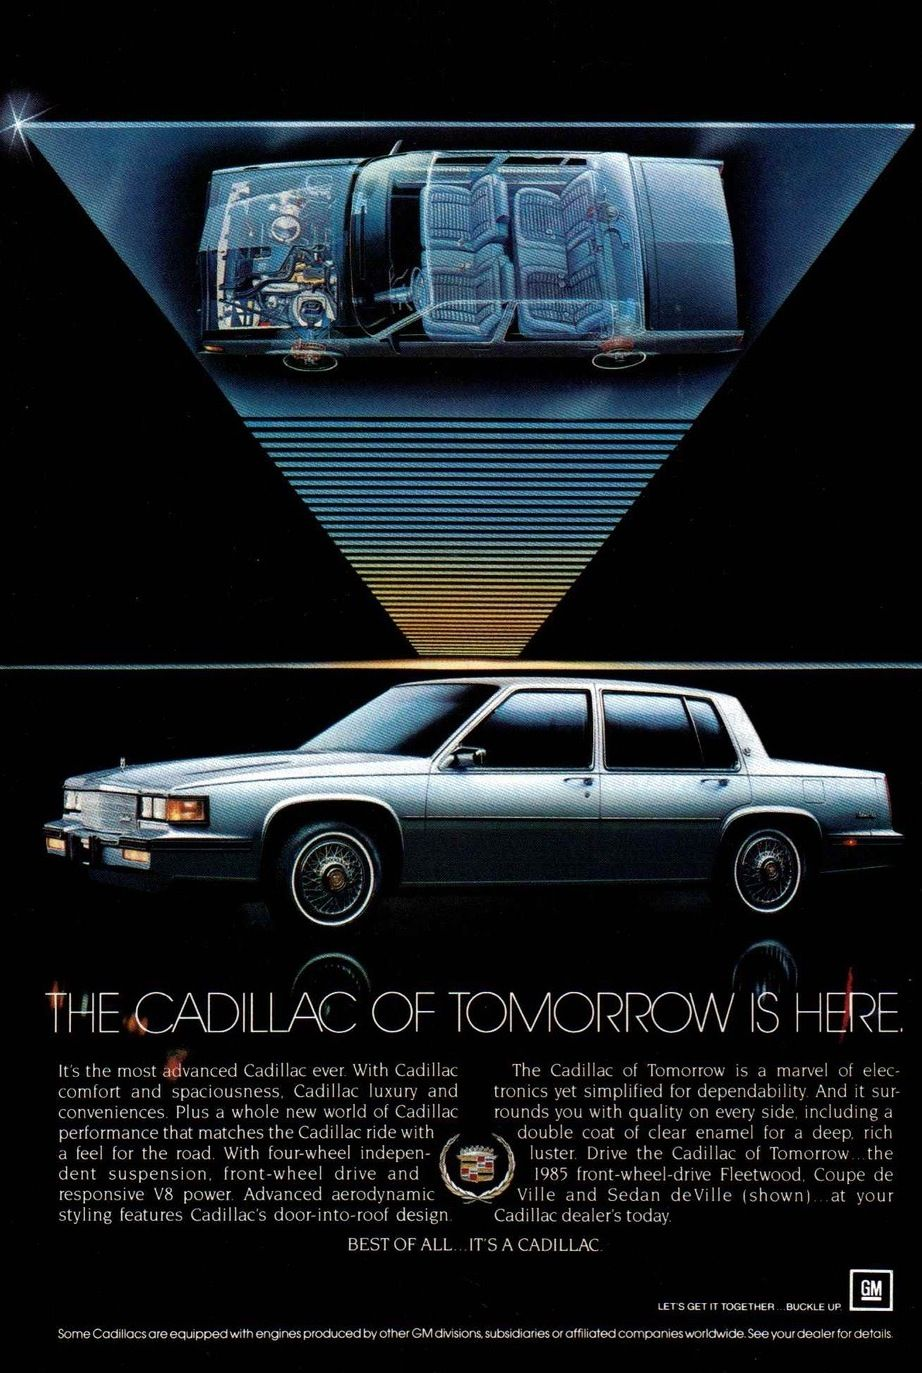 1987 Cadillac Commercial